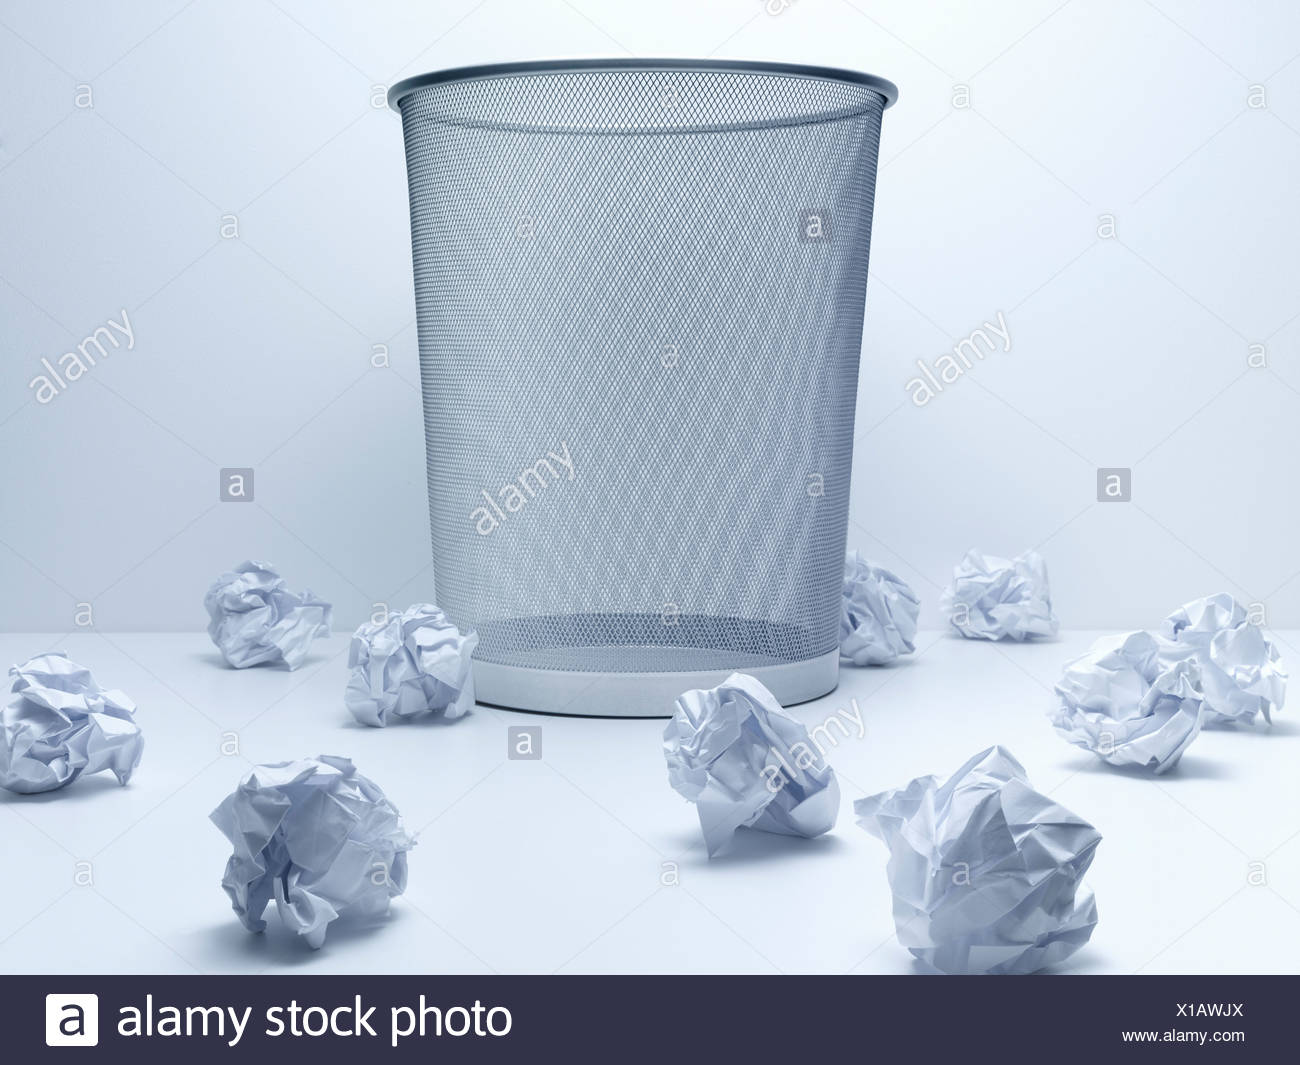 Crumpled balls of paper beside wastebasket - Stock Image